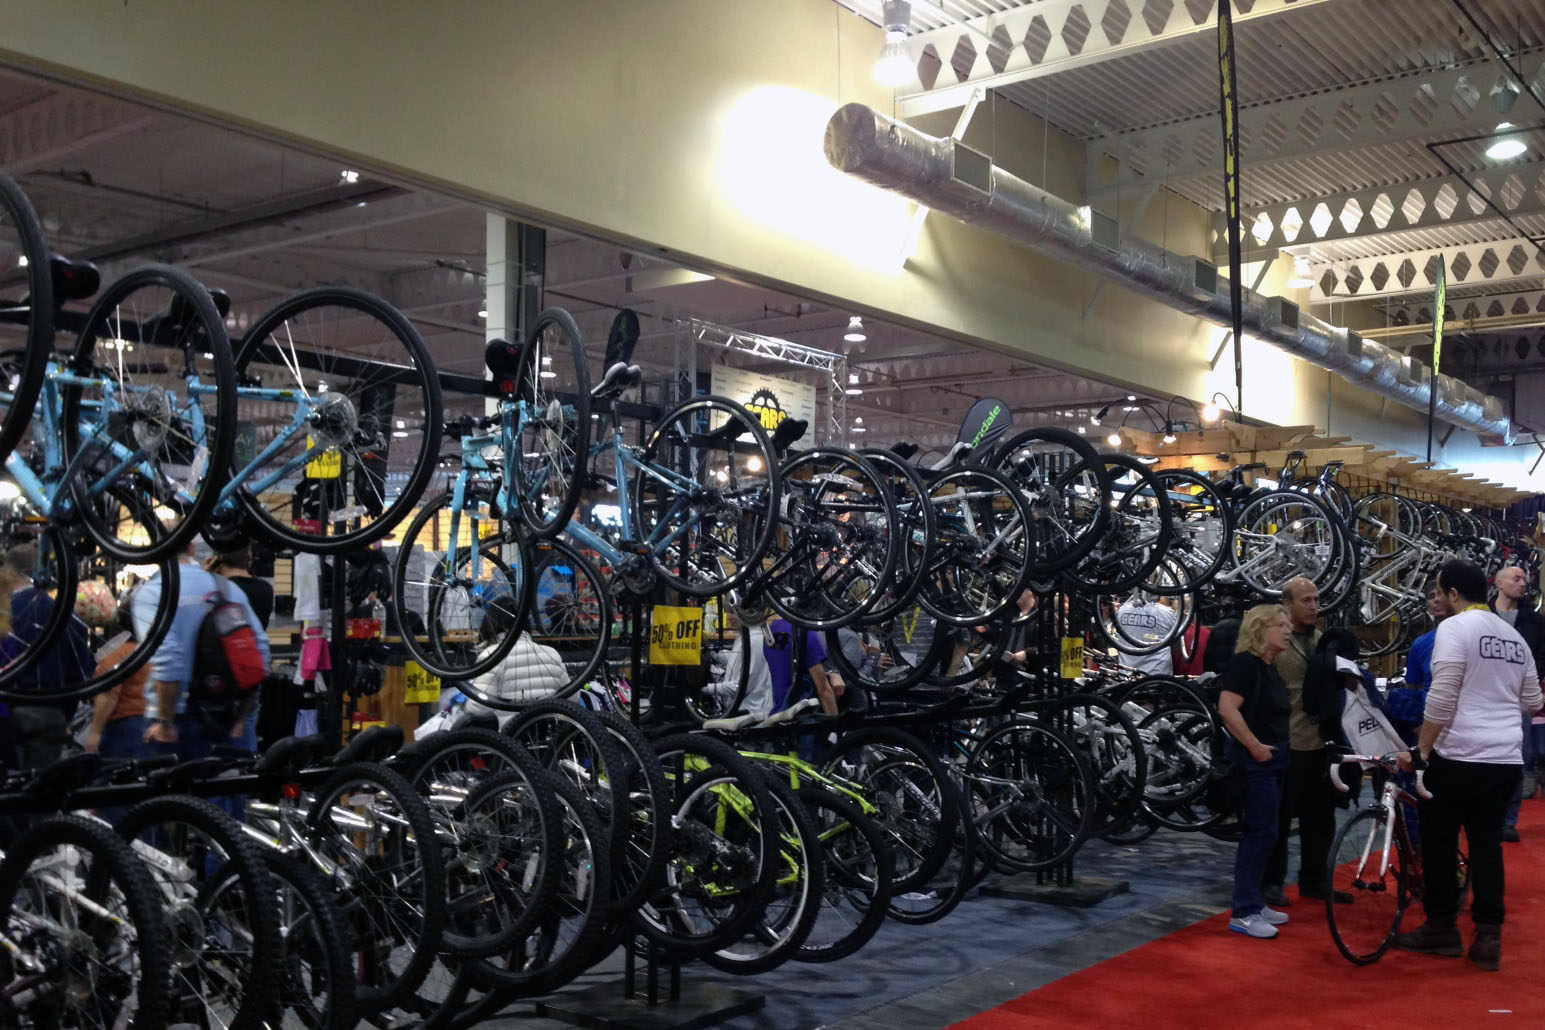 5 things to do this weekend: Bicycle show, roller derby & arcade night